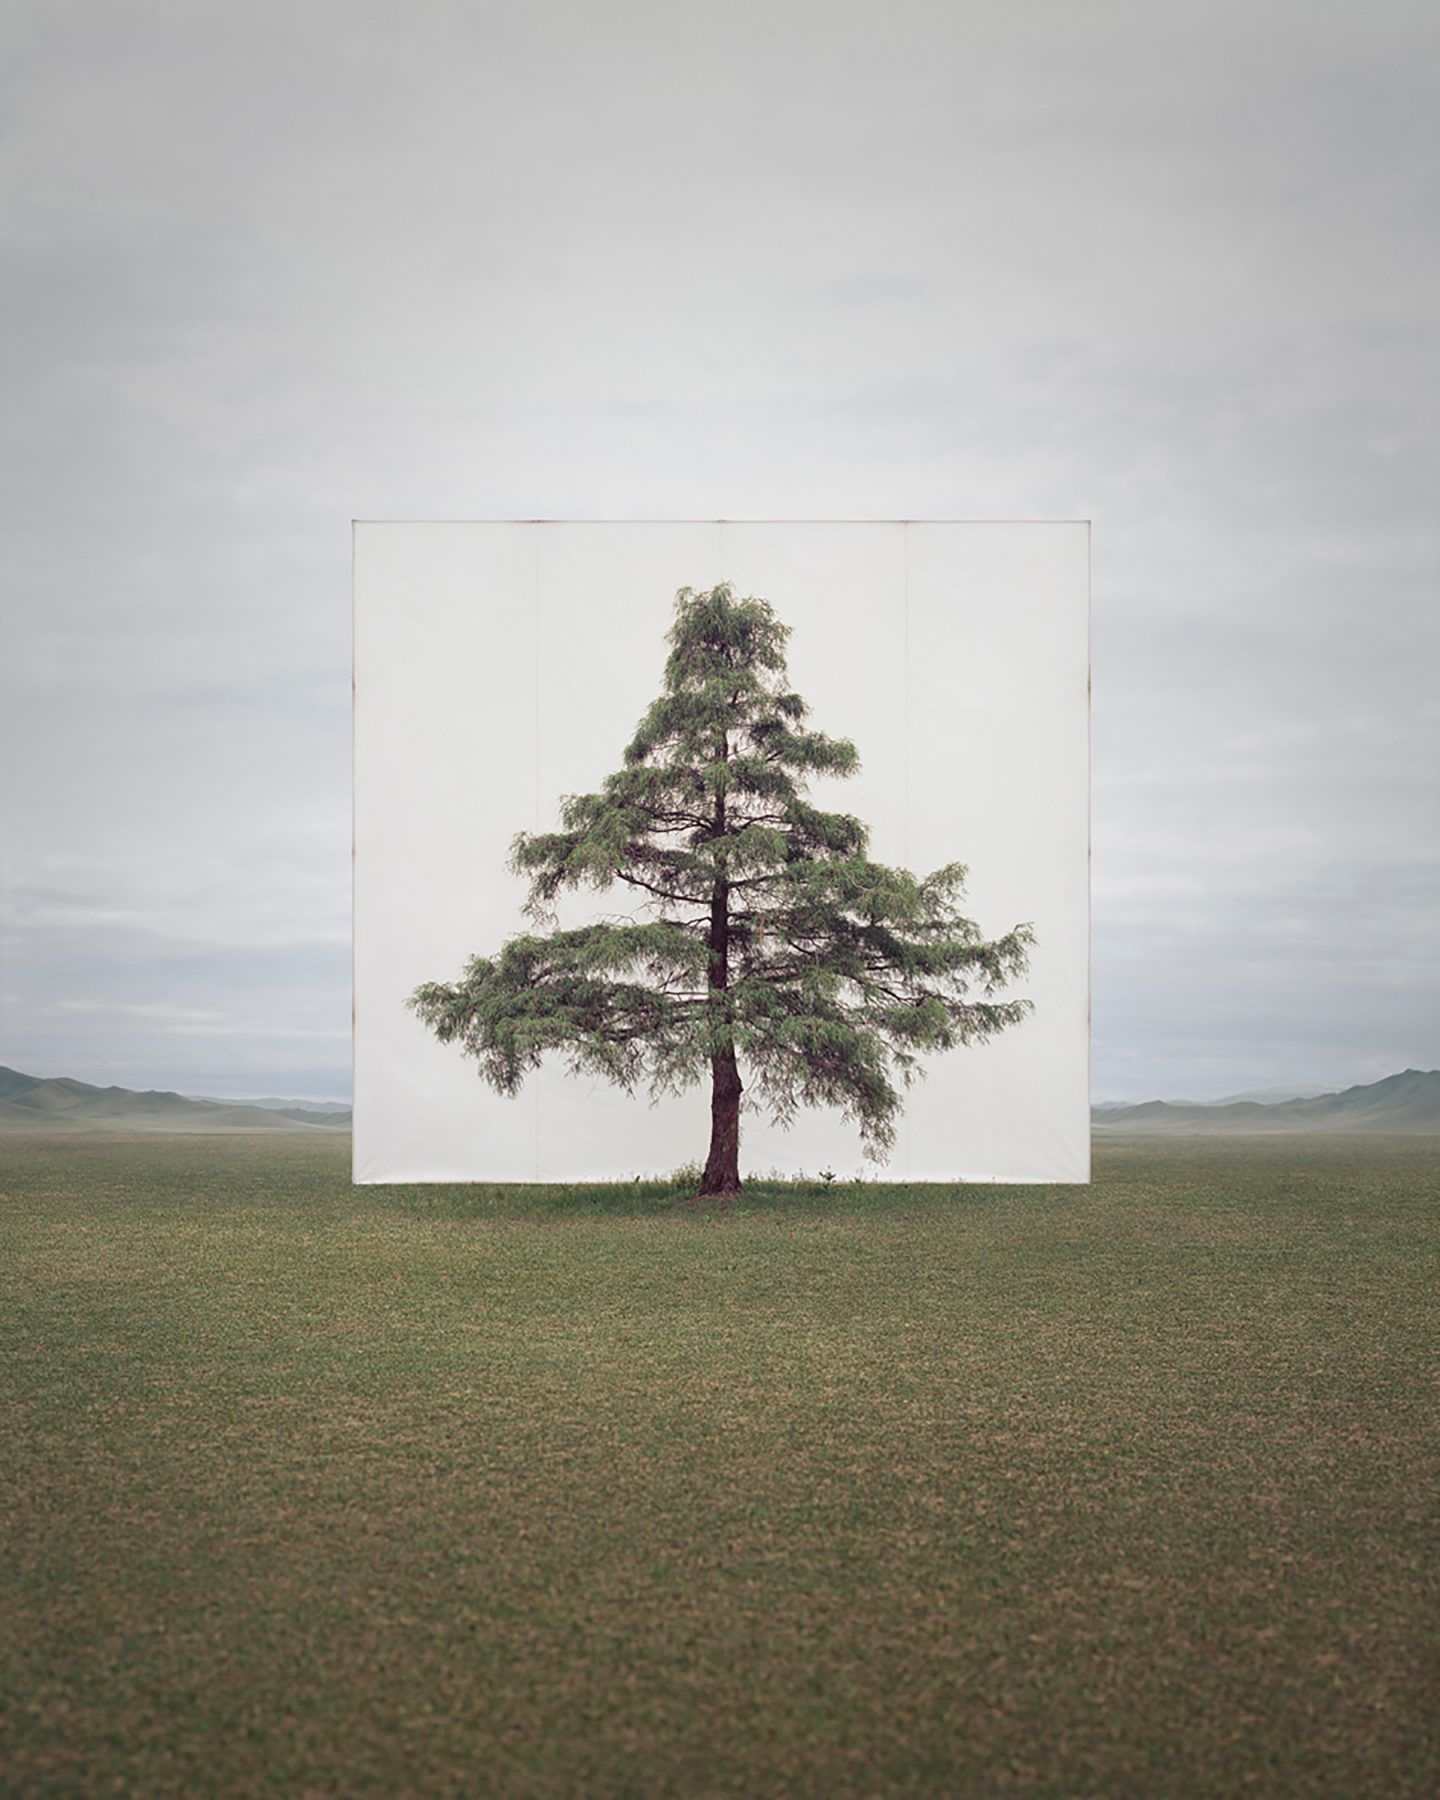 IGNANT-Art-Myoung-Ho-Lee-Tree-7